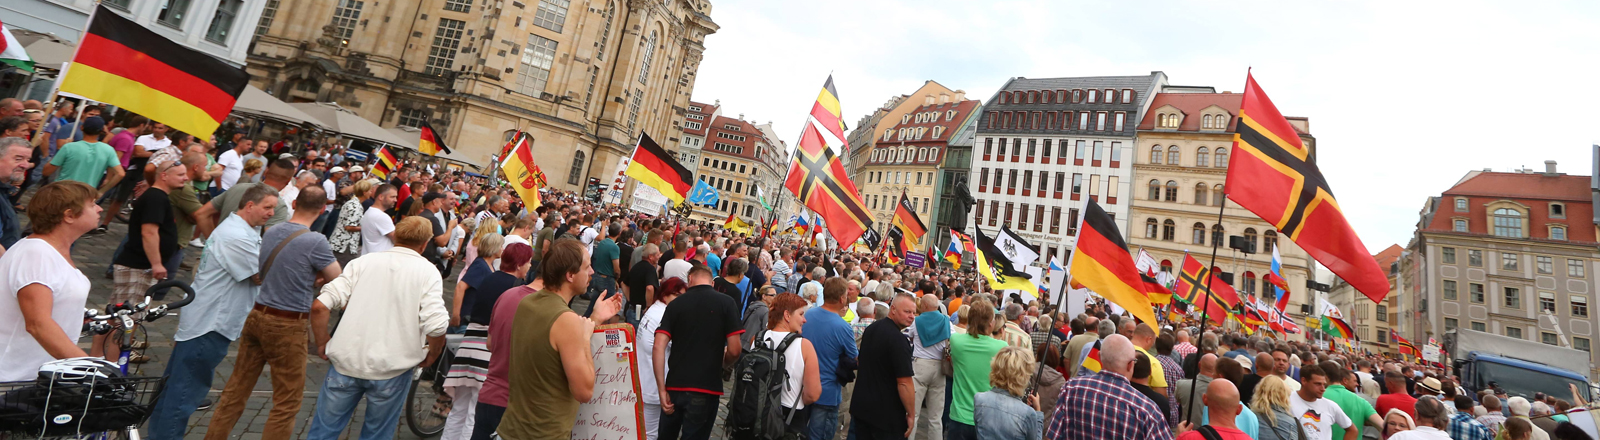 Pegida-Demonstration in Dresden am 29.08.2016.